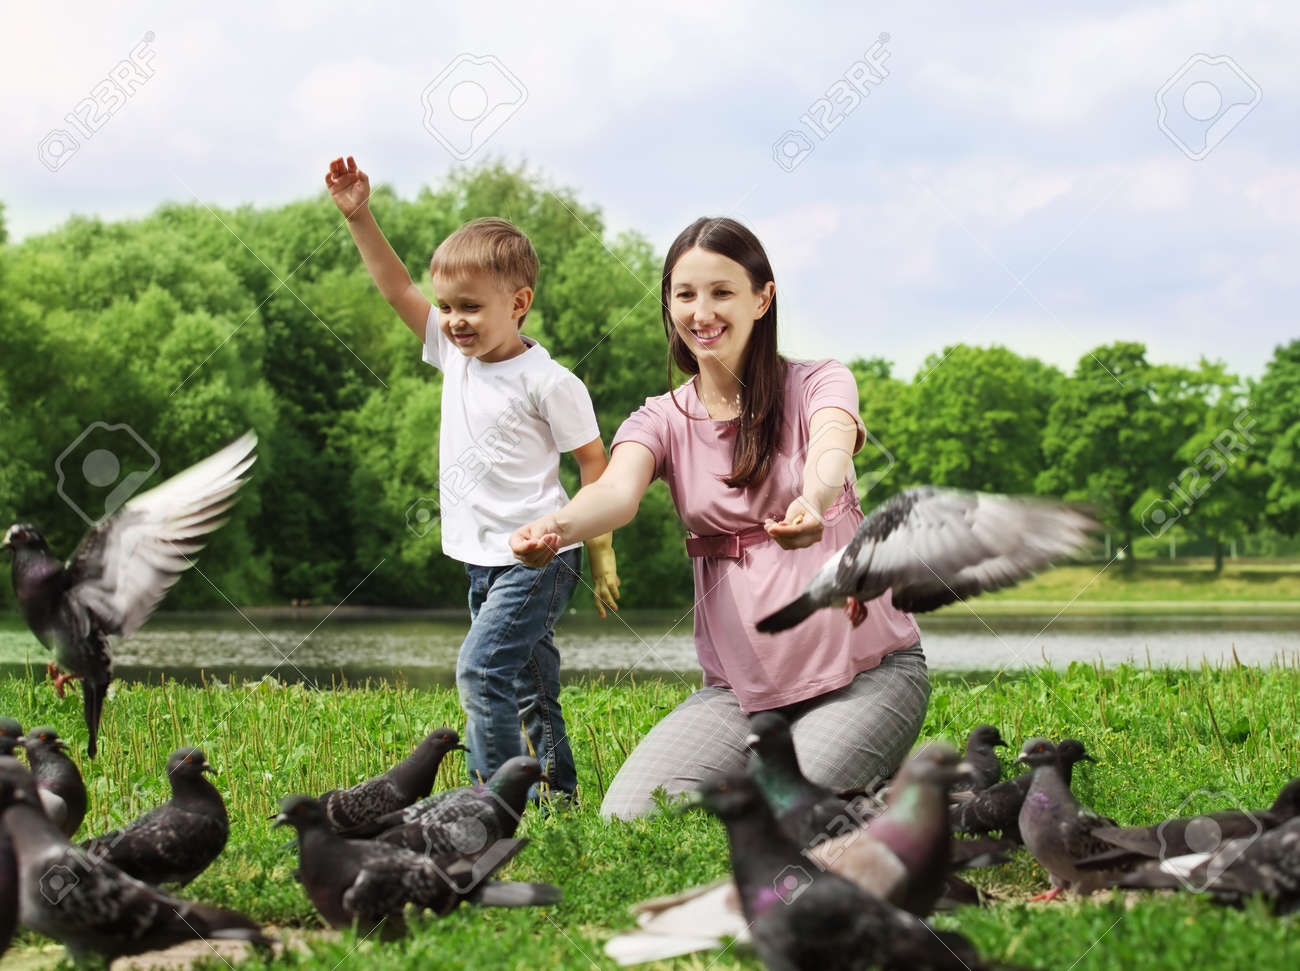 Pregnant woman with her son feeding pigeons in a park Stock Photo - 10417684